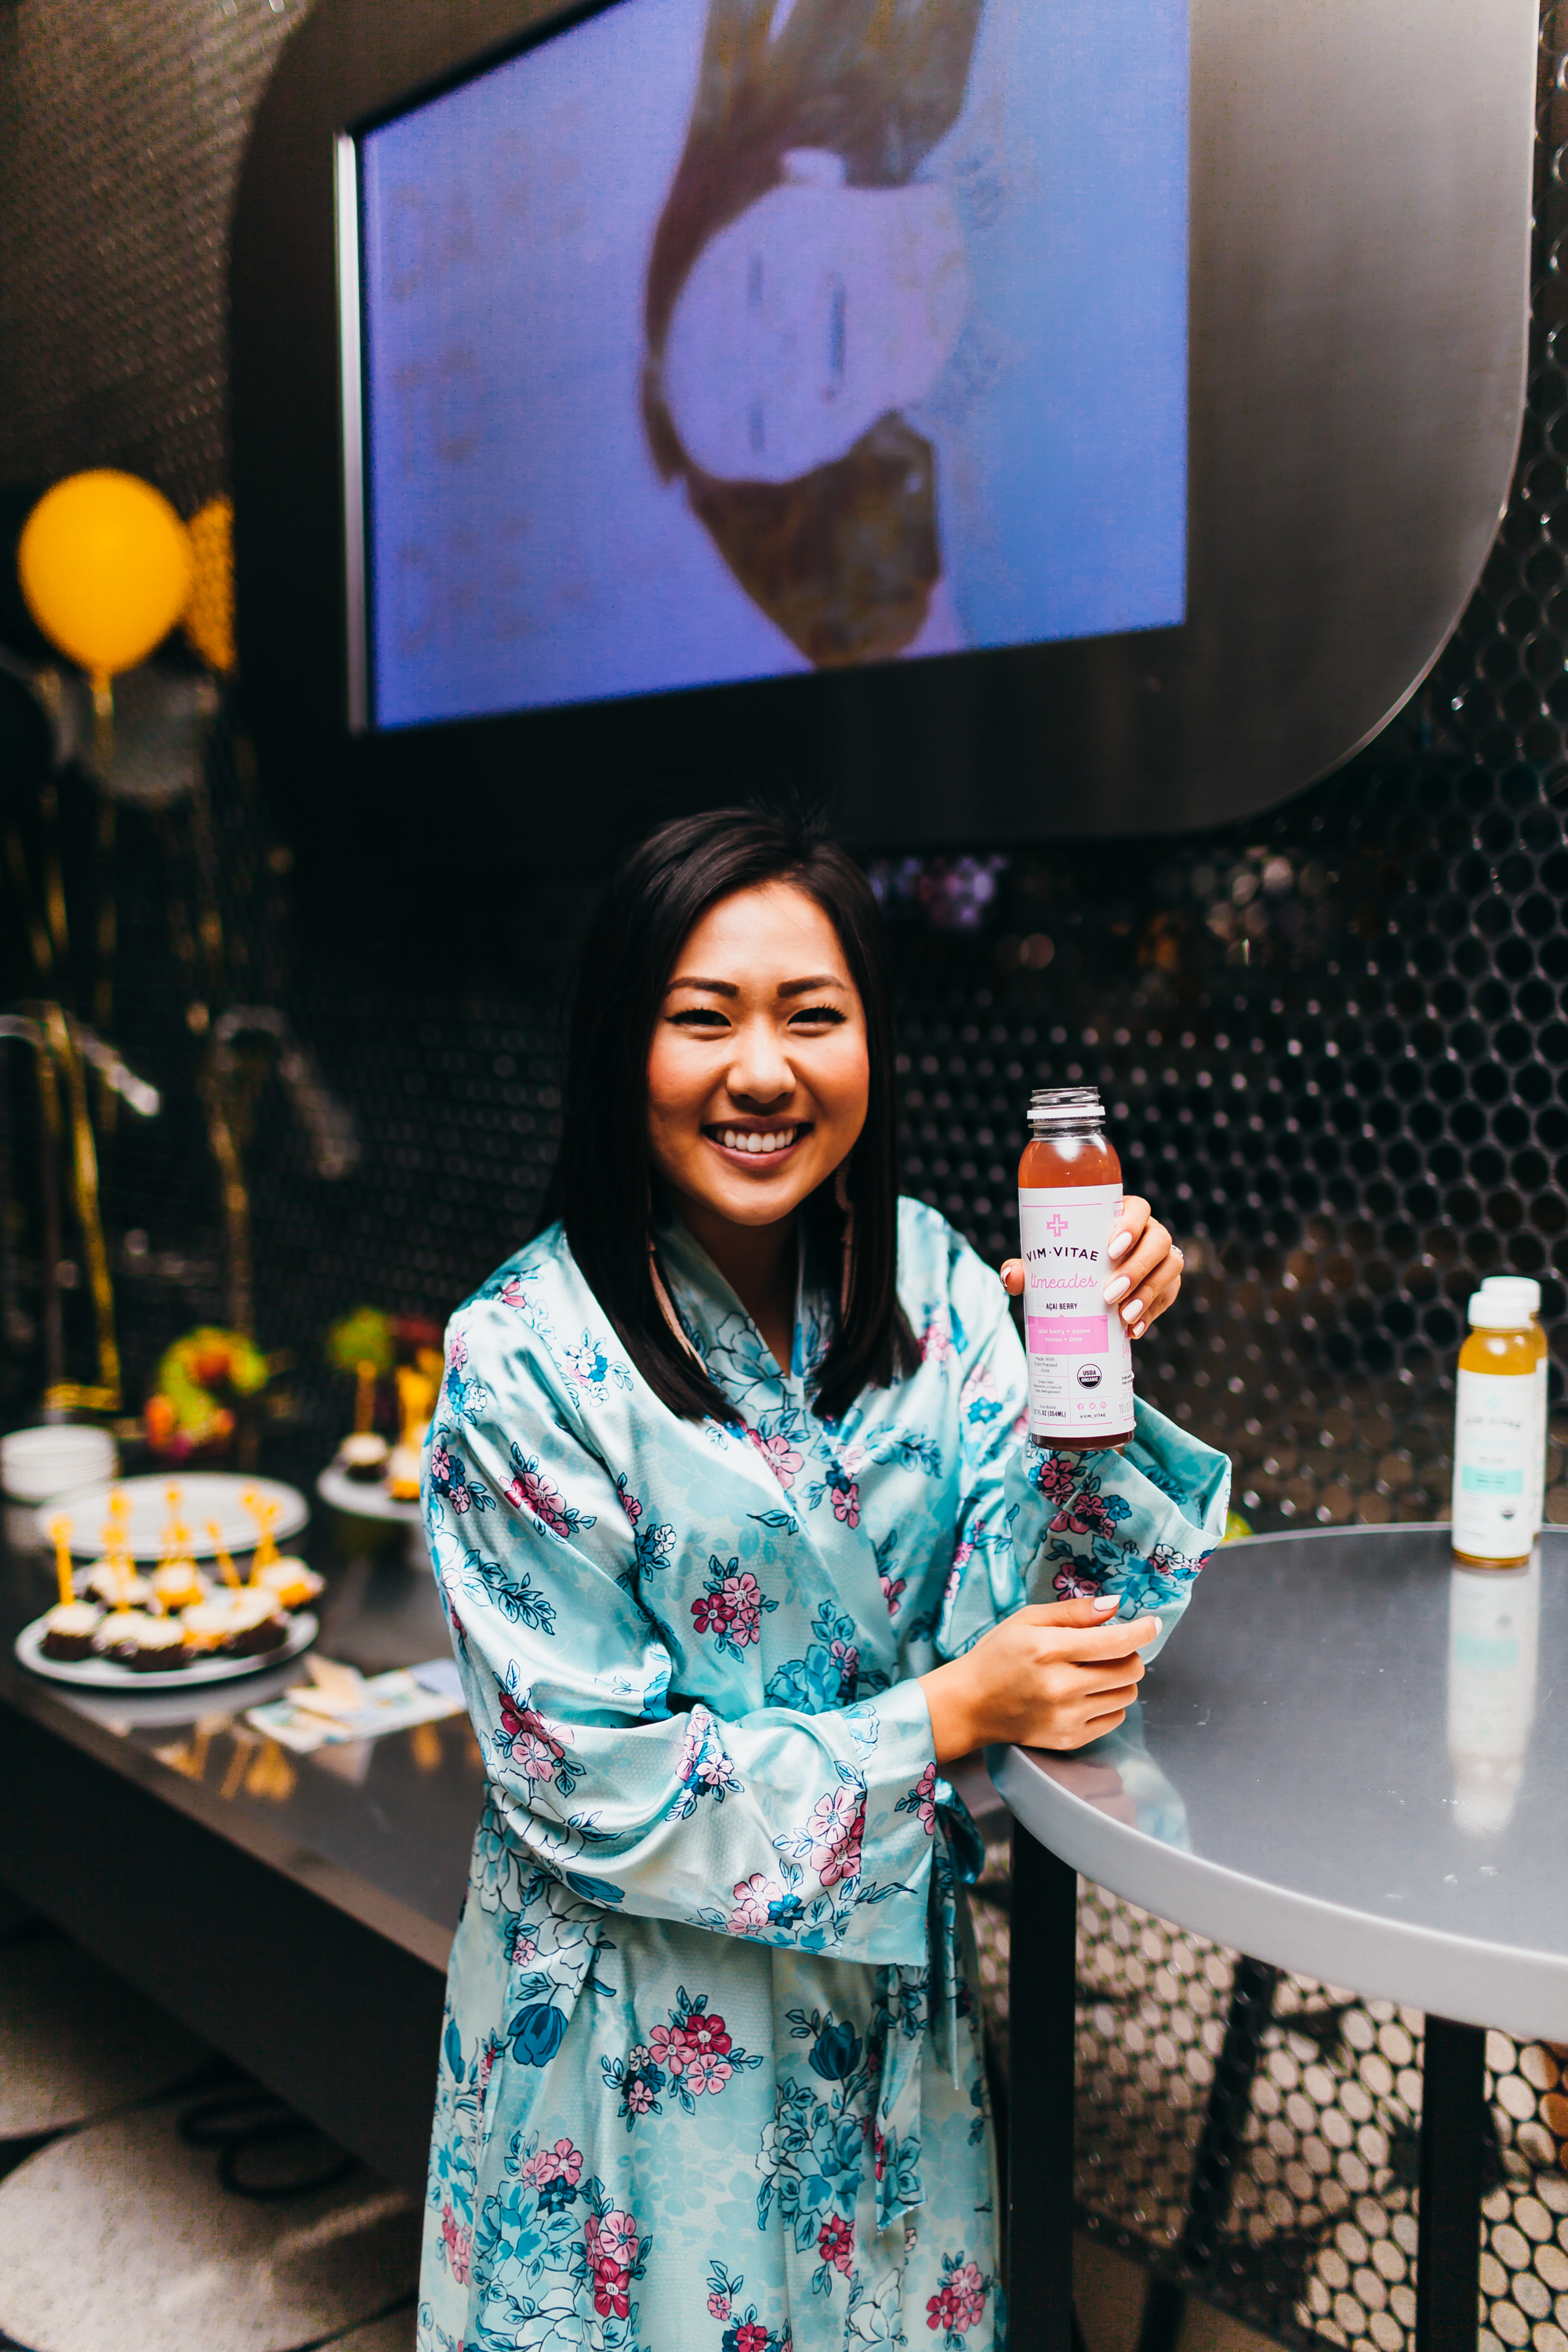 bumble-bff-dallas-launch-event-6714.jpg